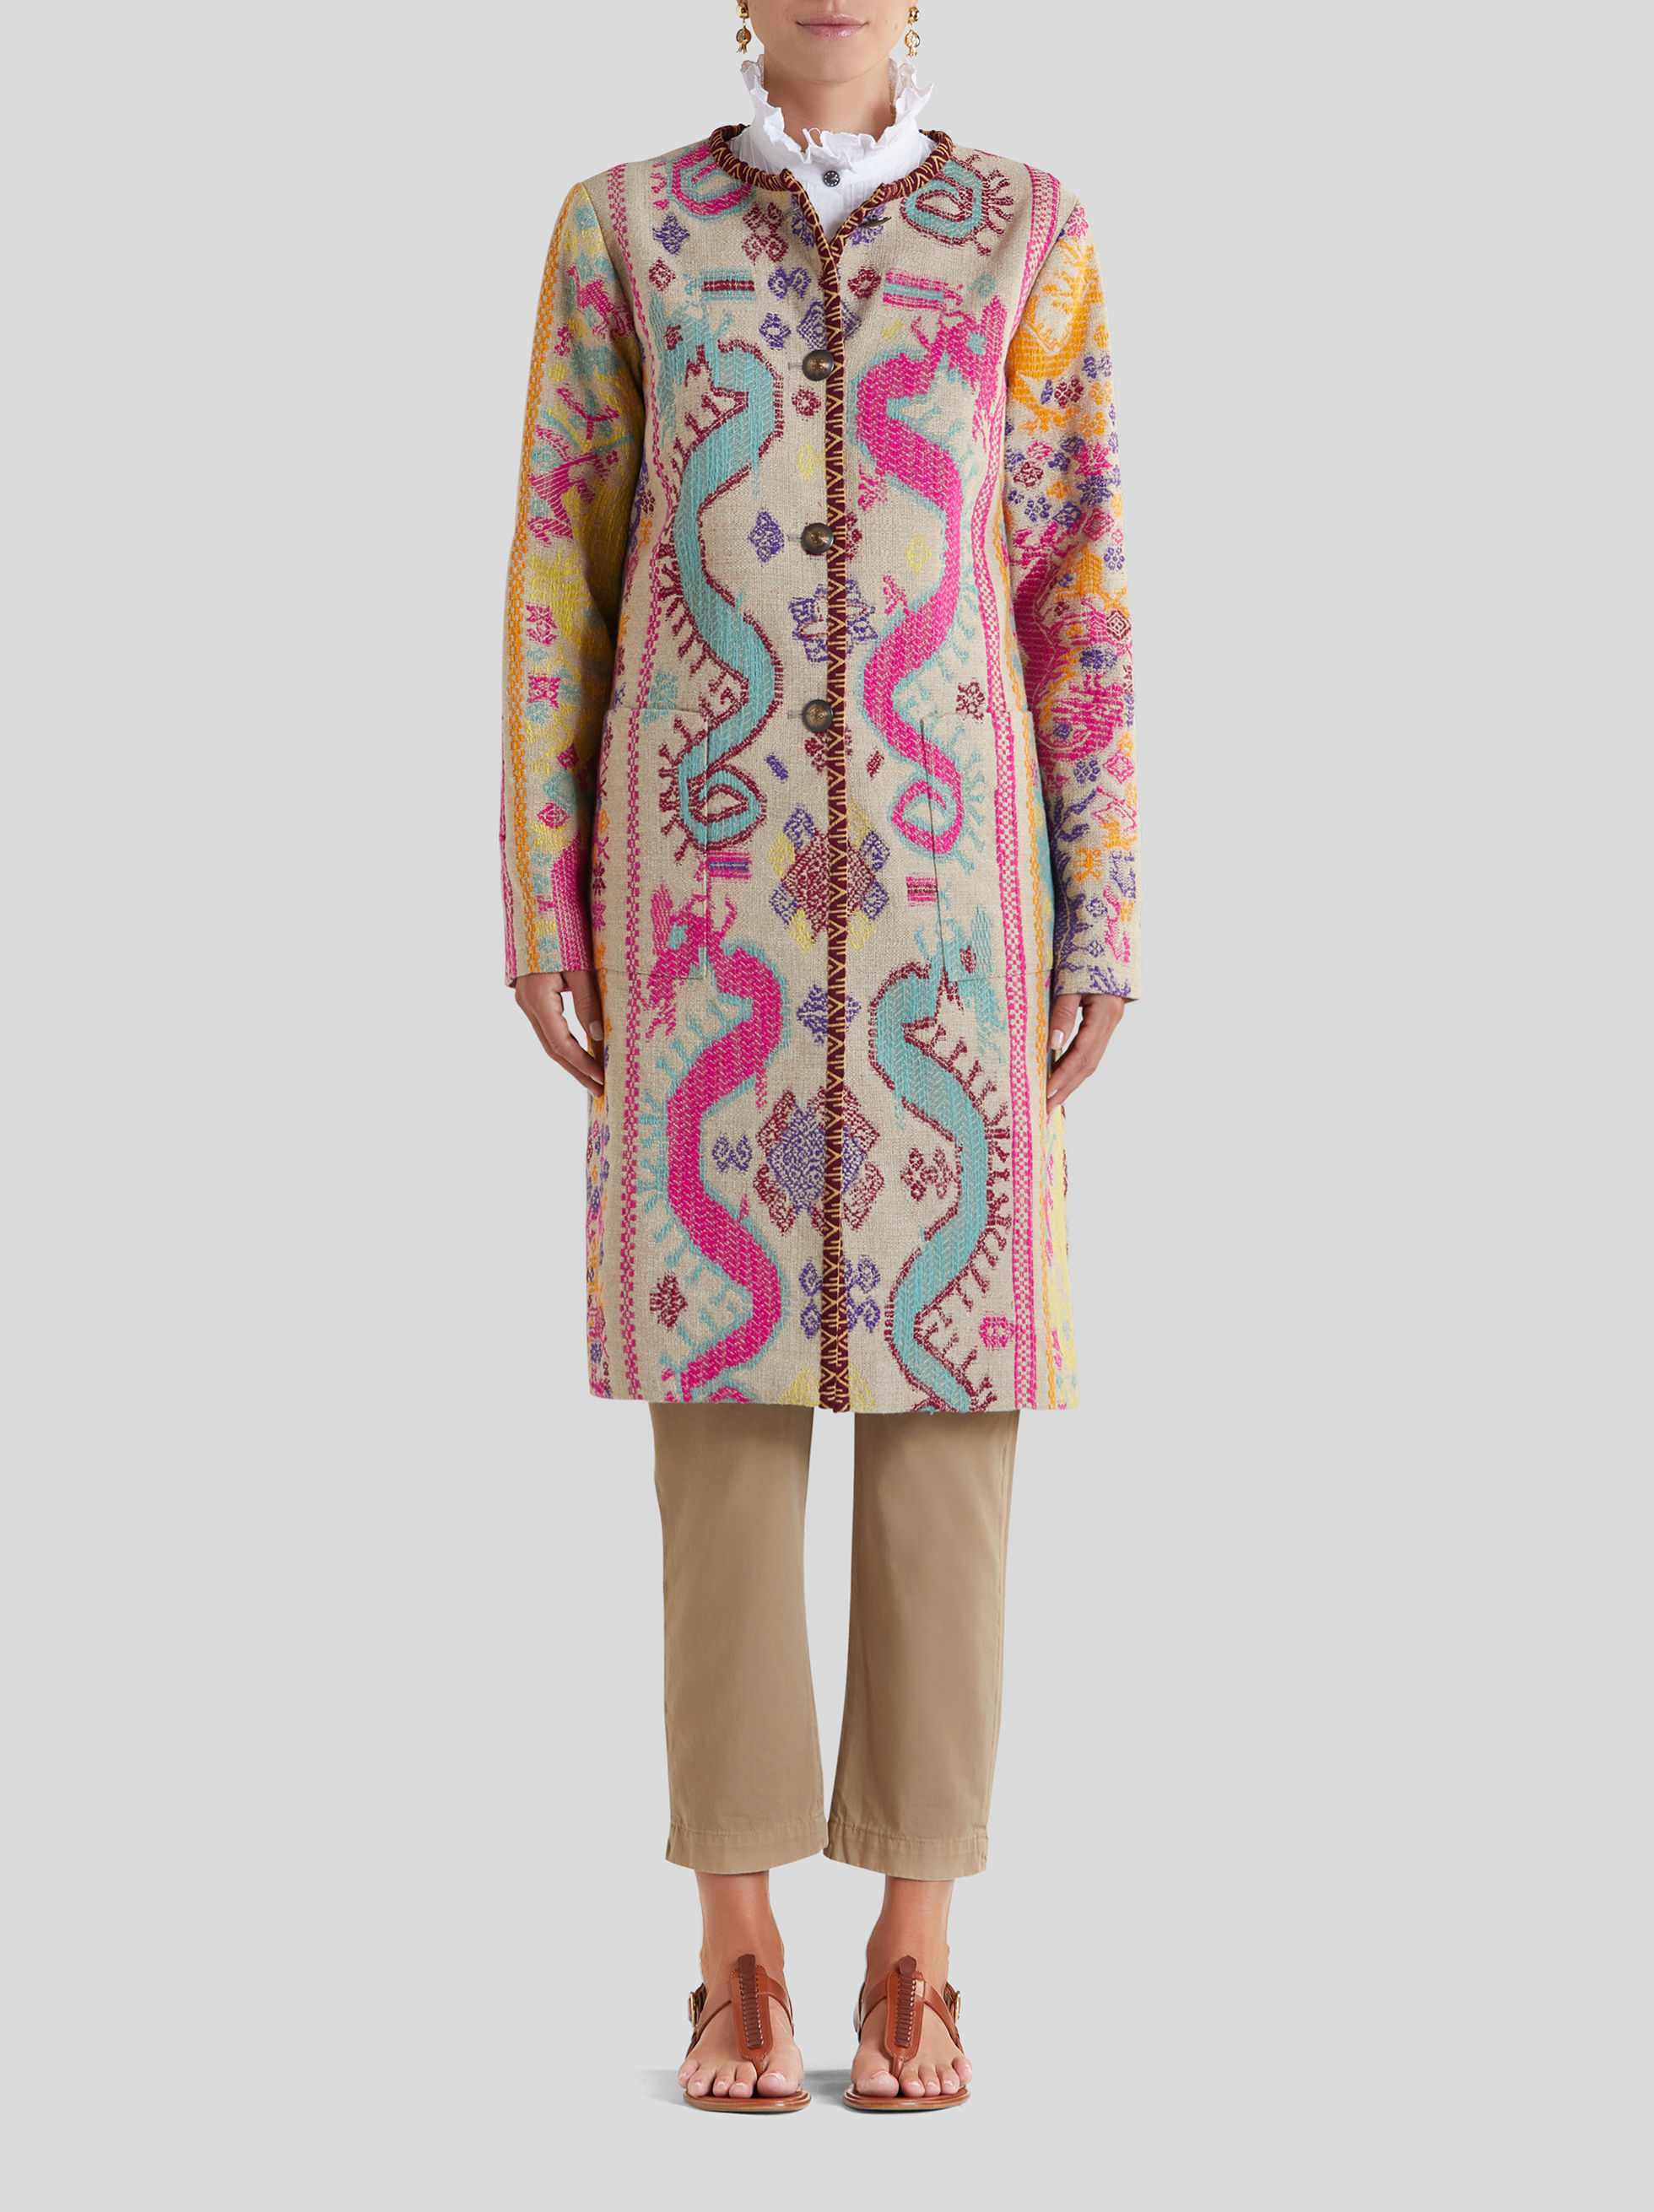 LIGHT EMBROIDERED JACQUARD COAT